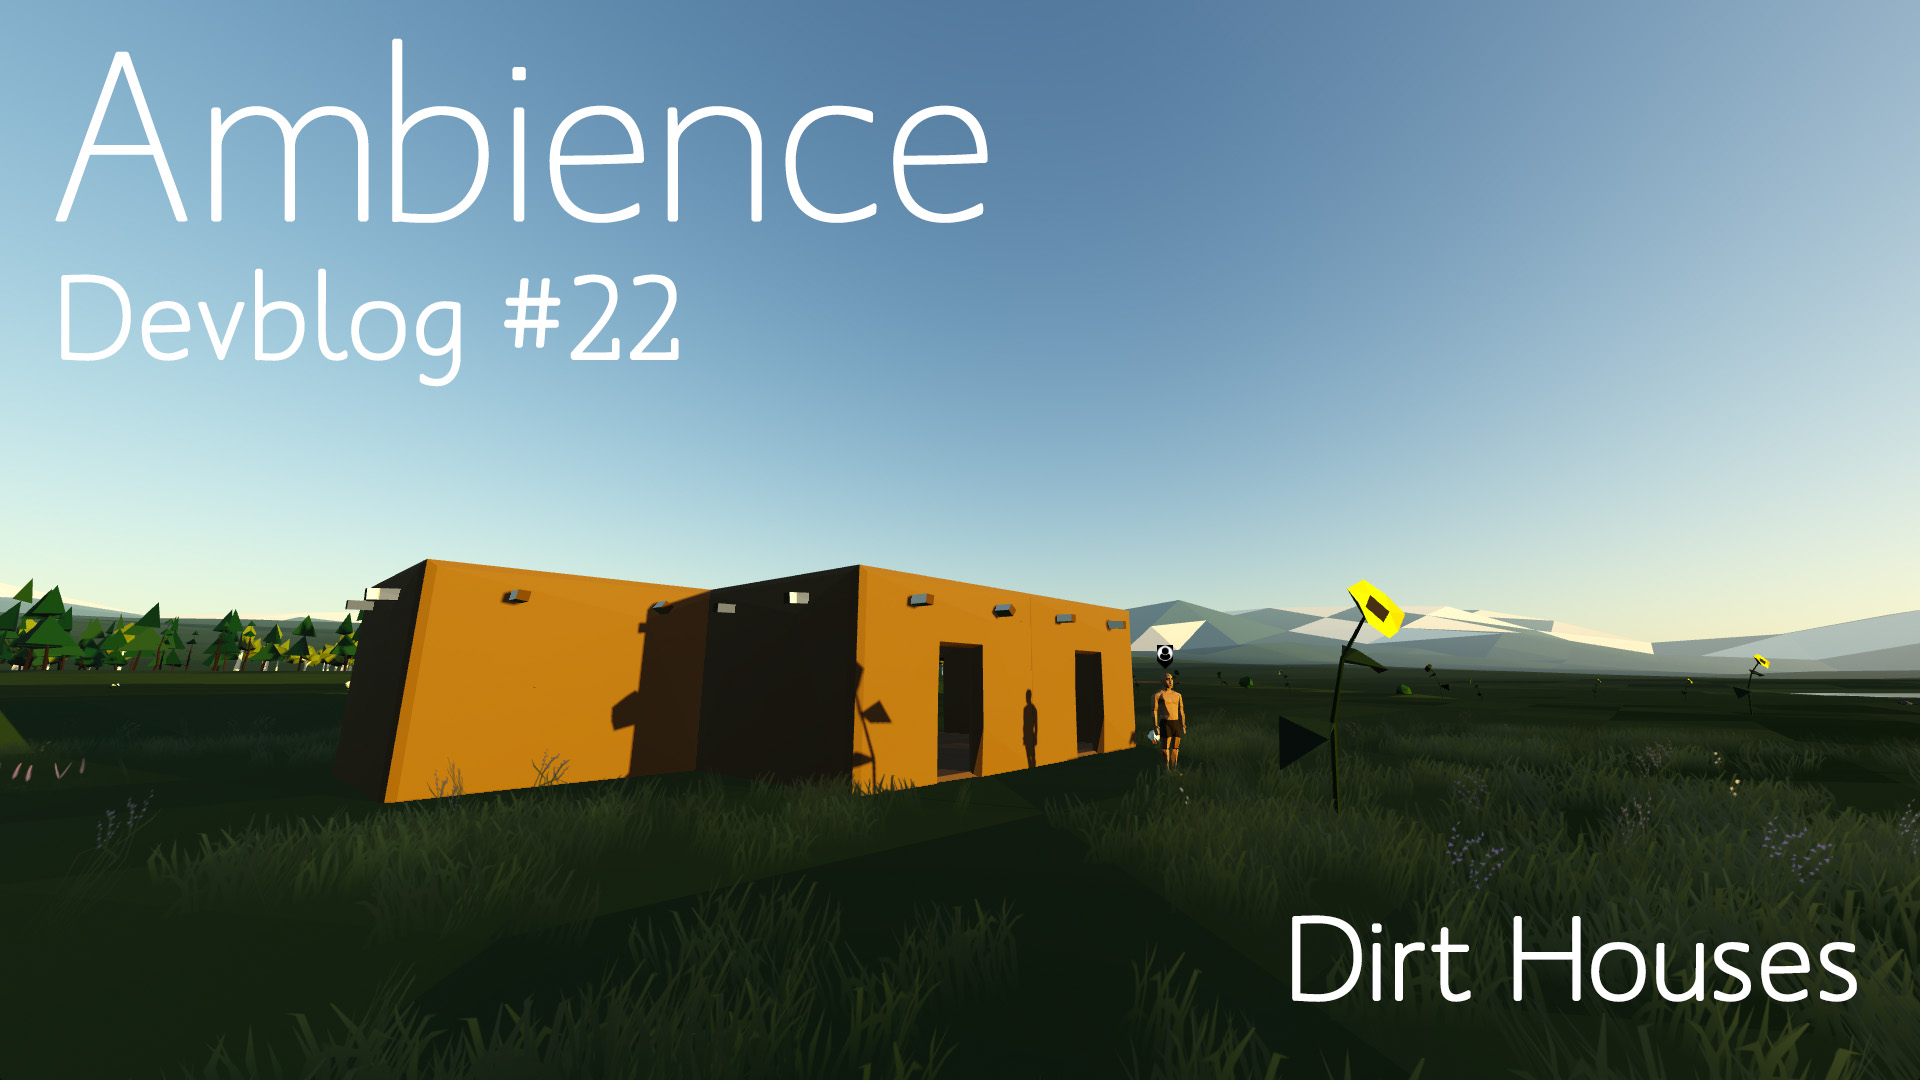 Video Devblog #22 - Dirt Houses feature image